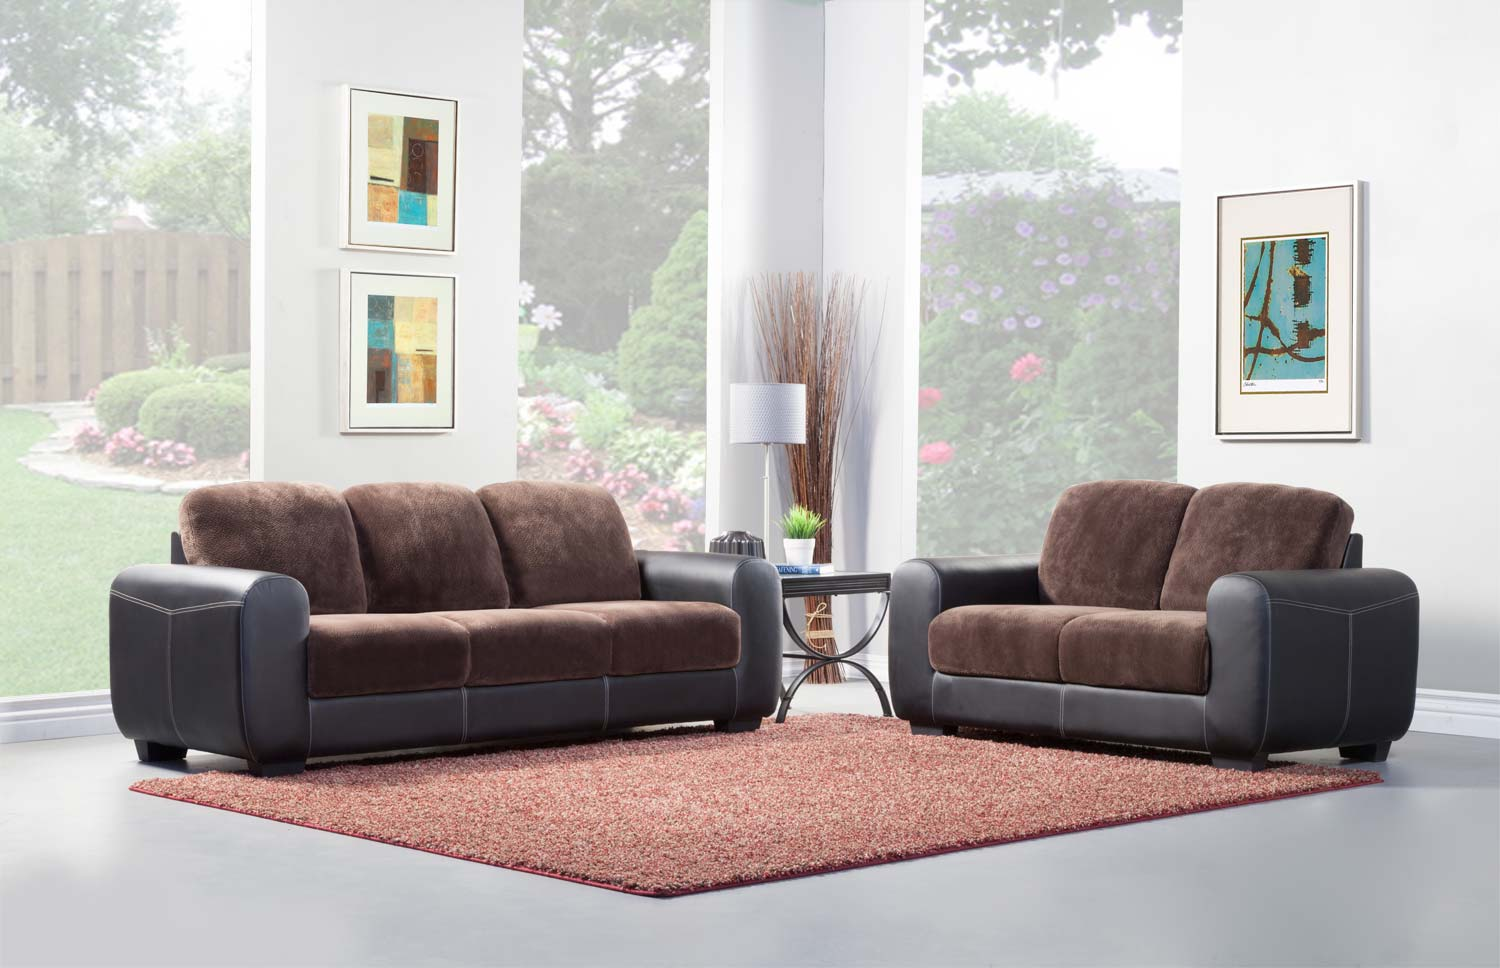 Homelegance Edwin Sofa Set - Chocolate - Textured Plush Microfiber & Bi-Cast Vinyl